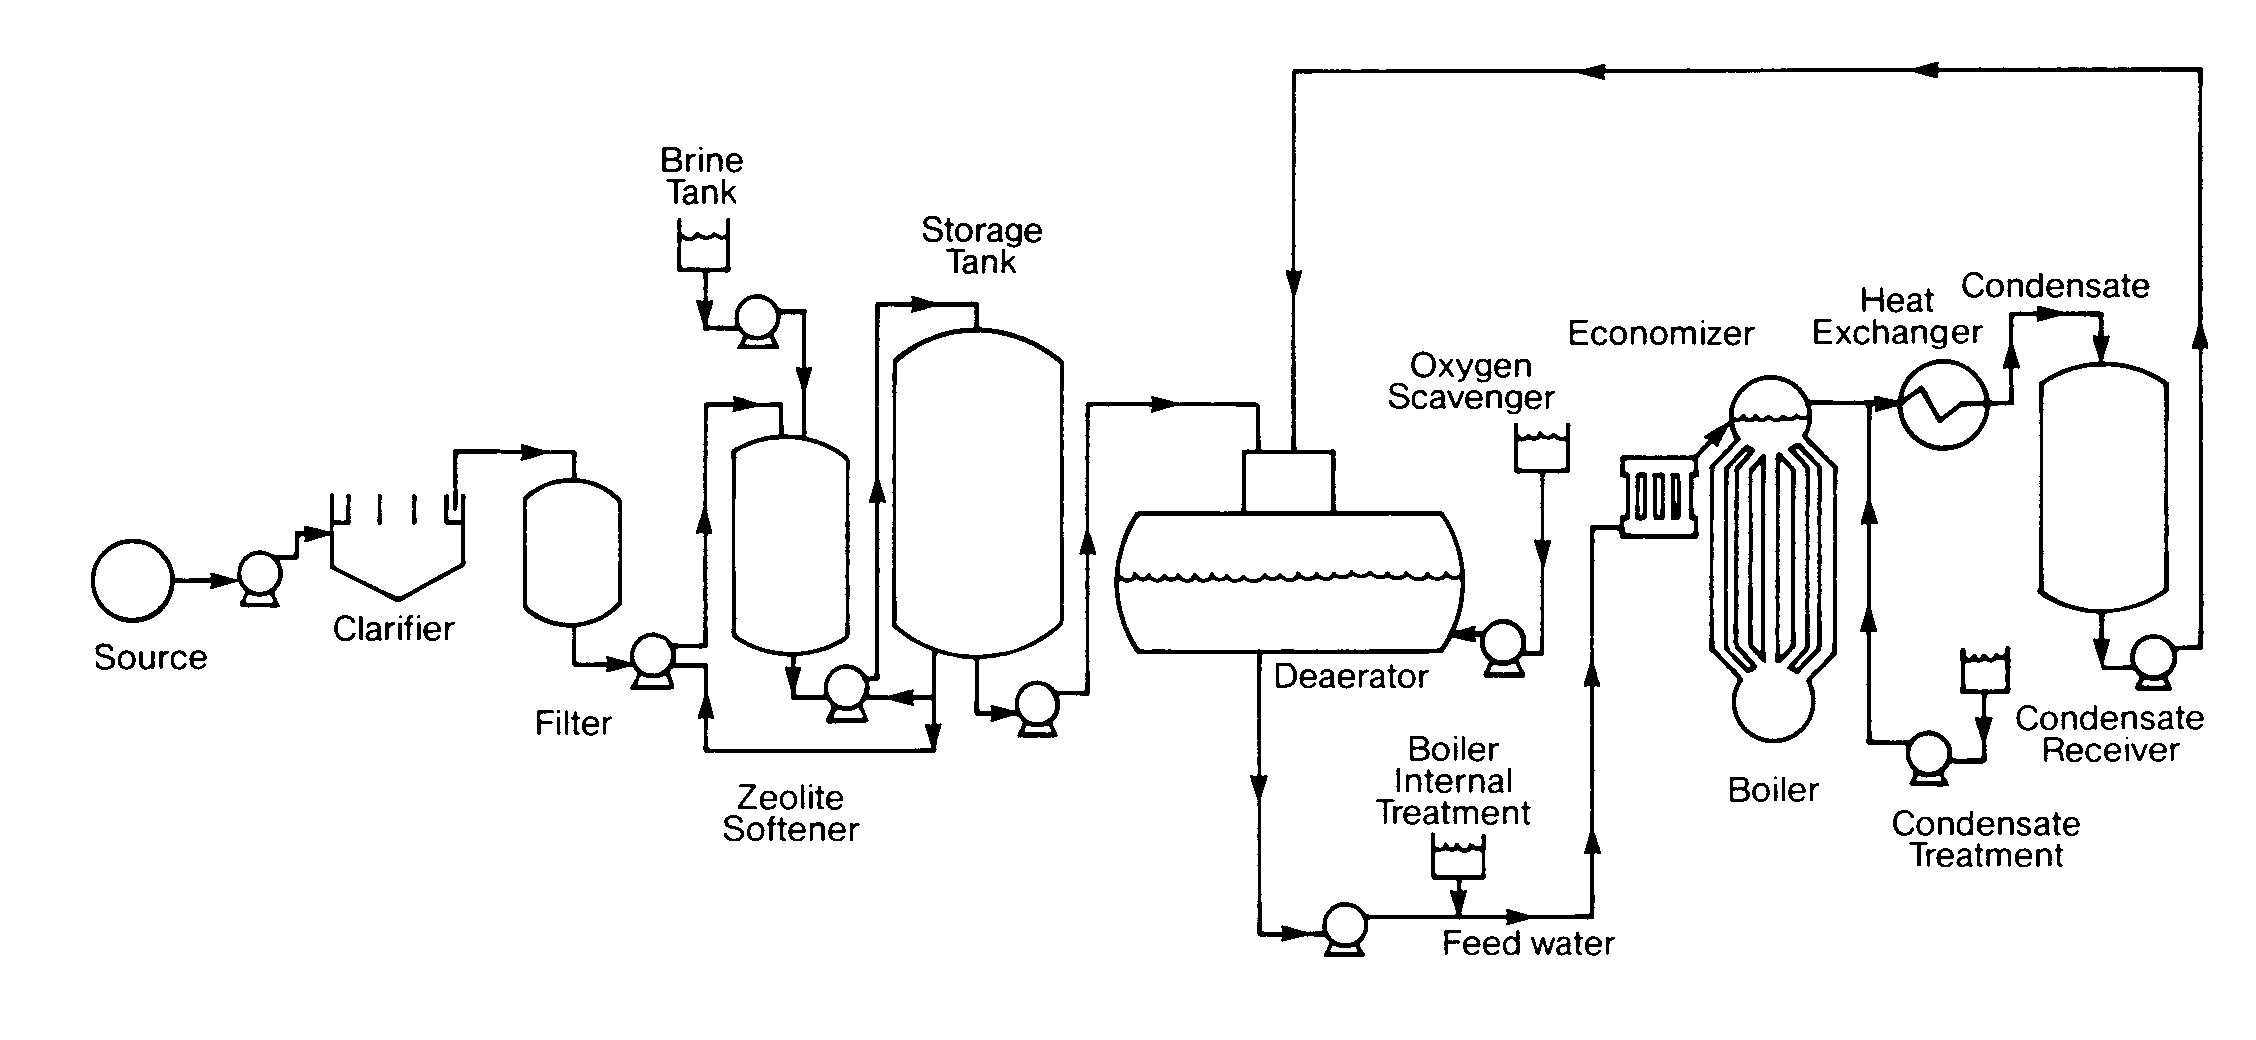 Steam Boiler Piping Schematic